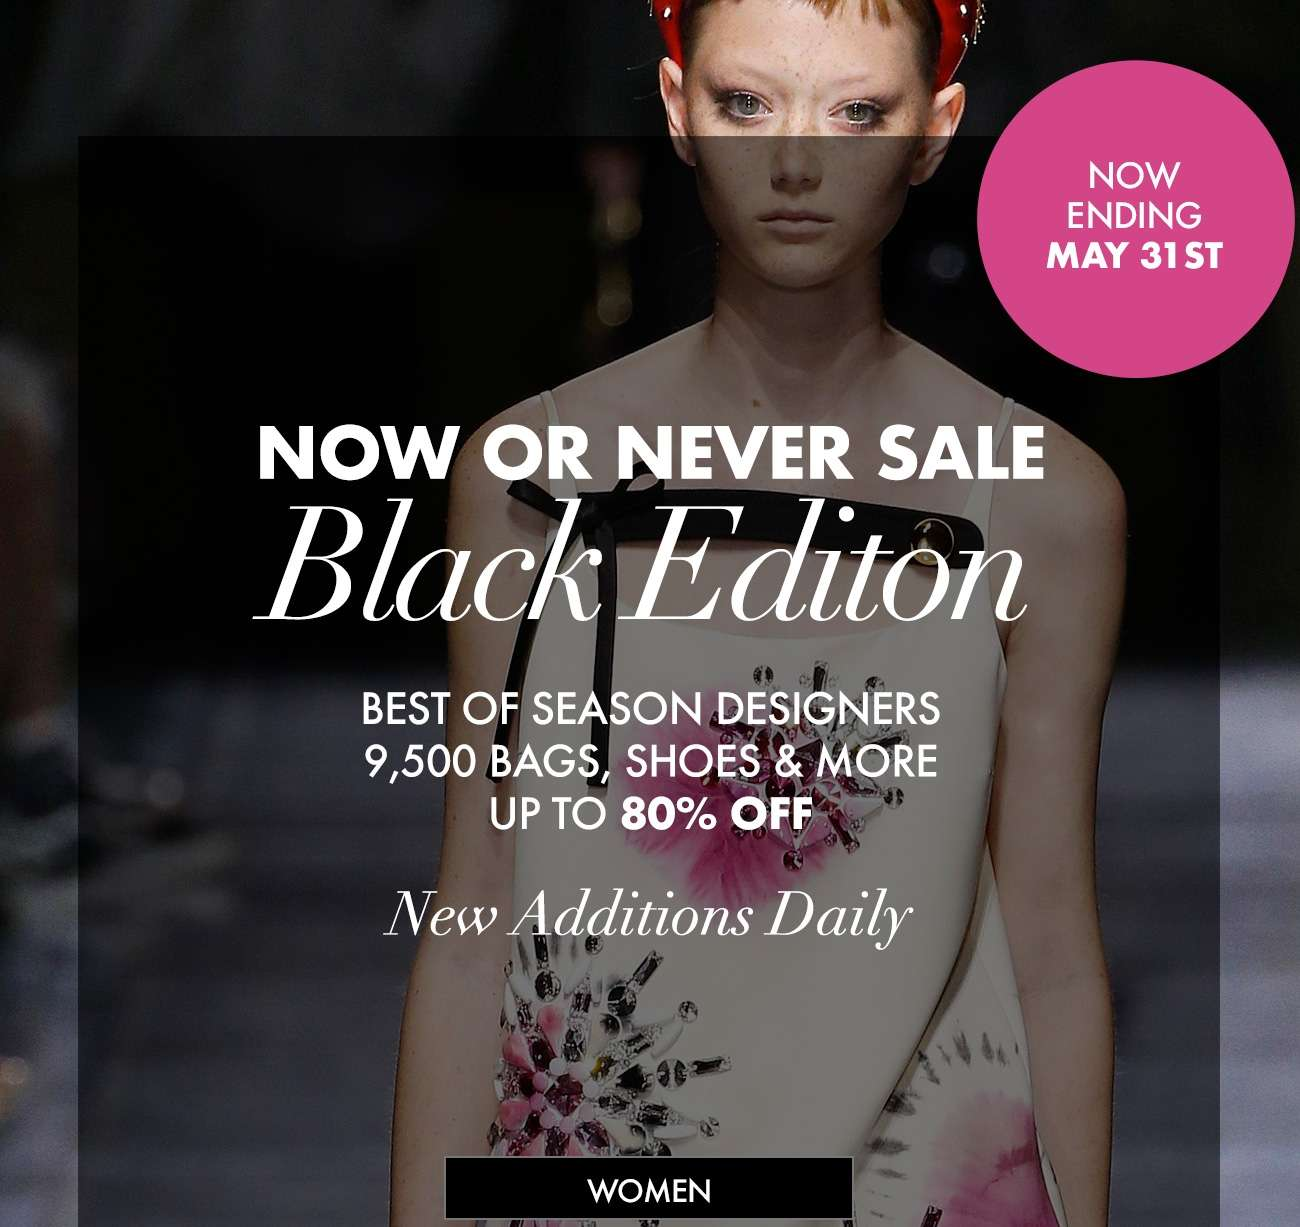 NOW OR NEVER SALE Black Editon